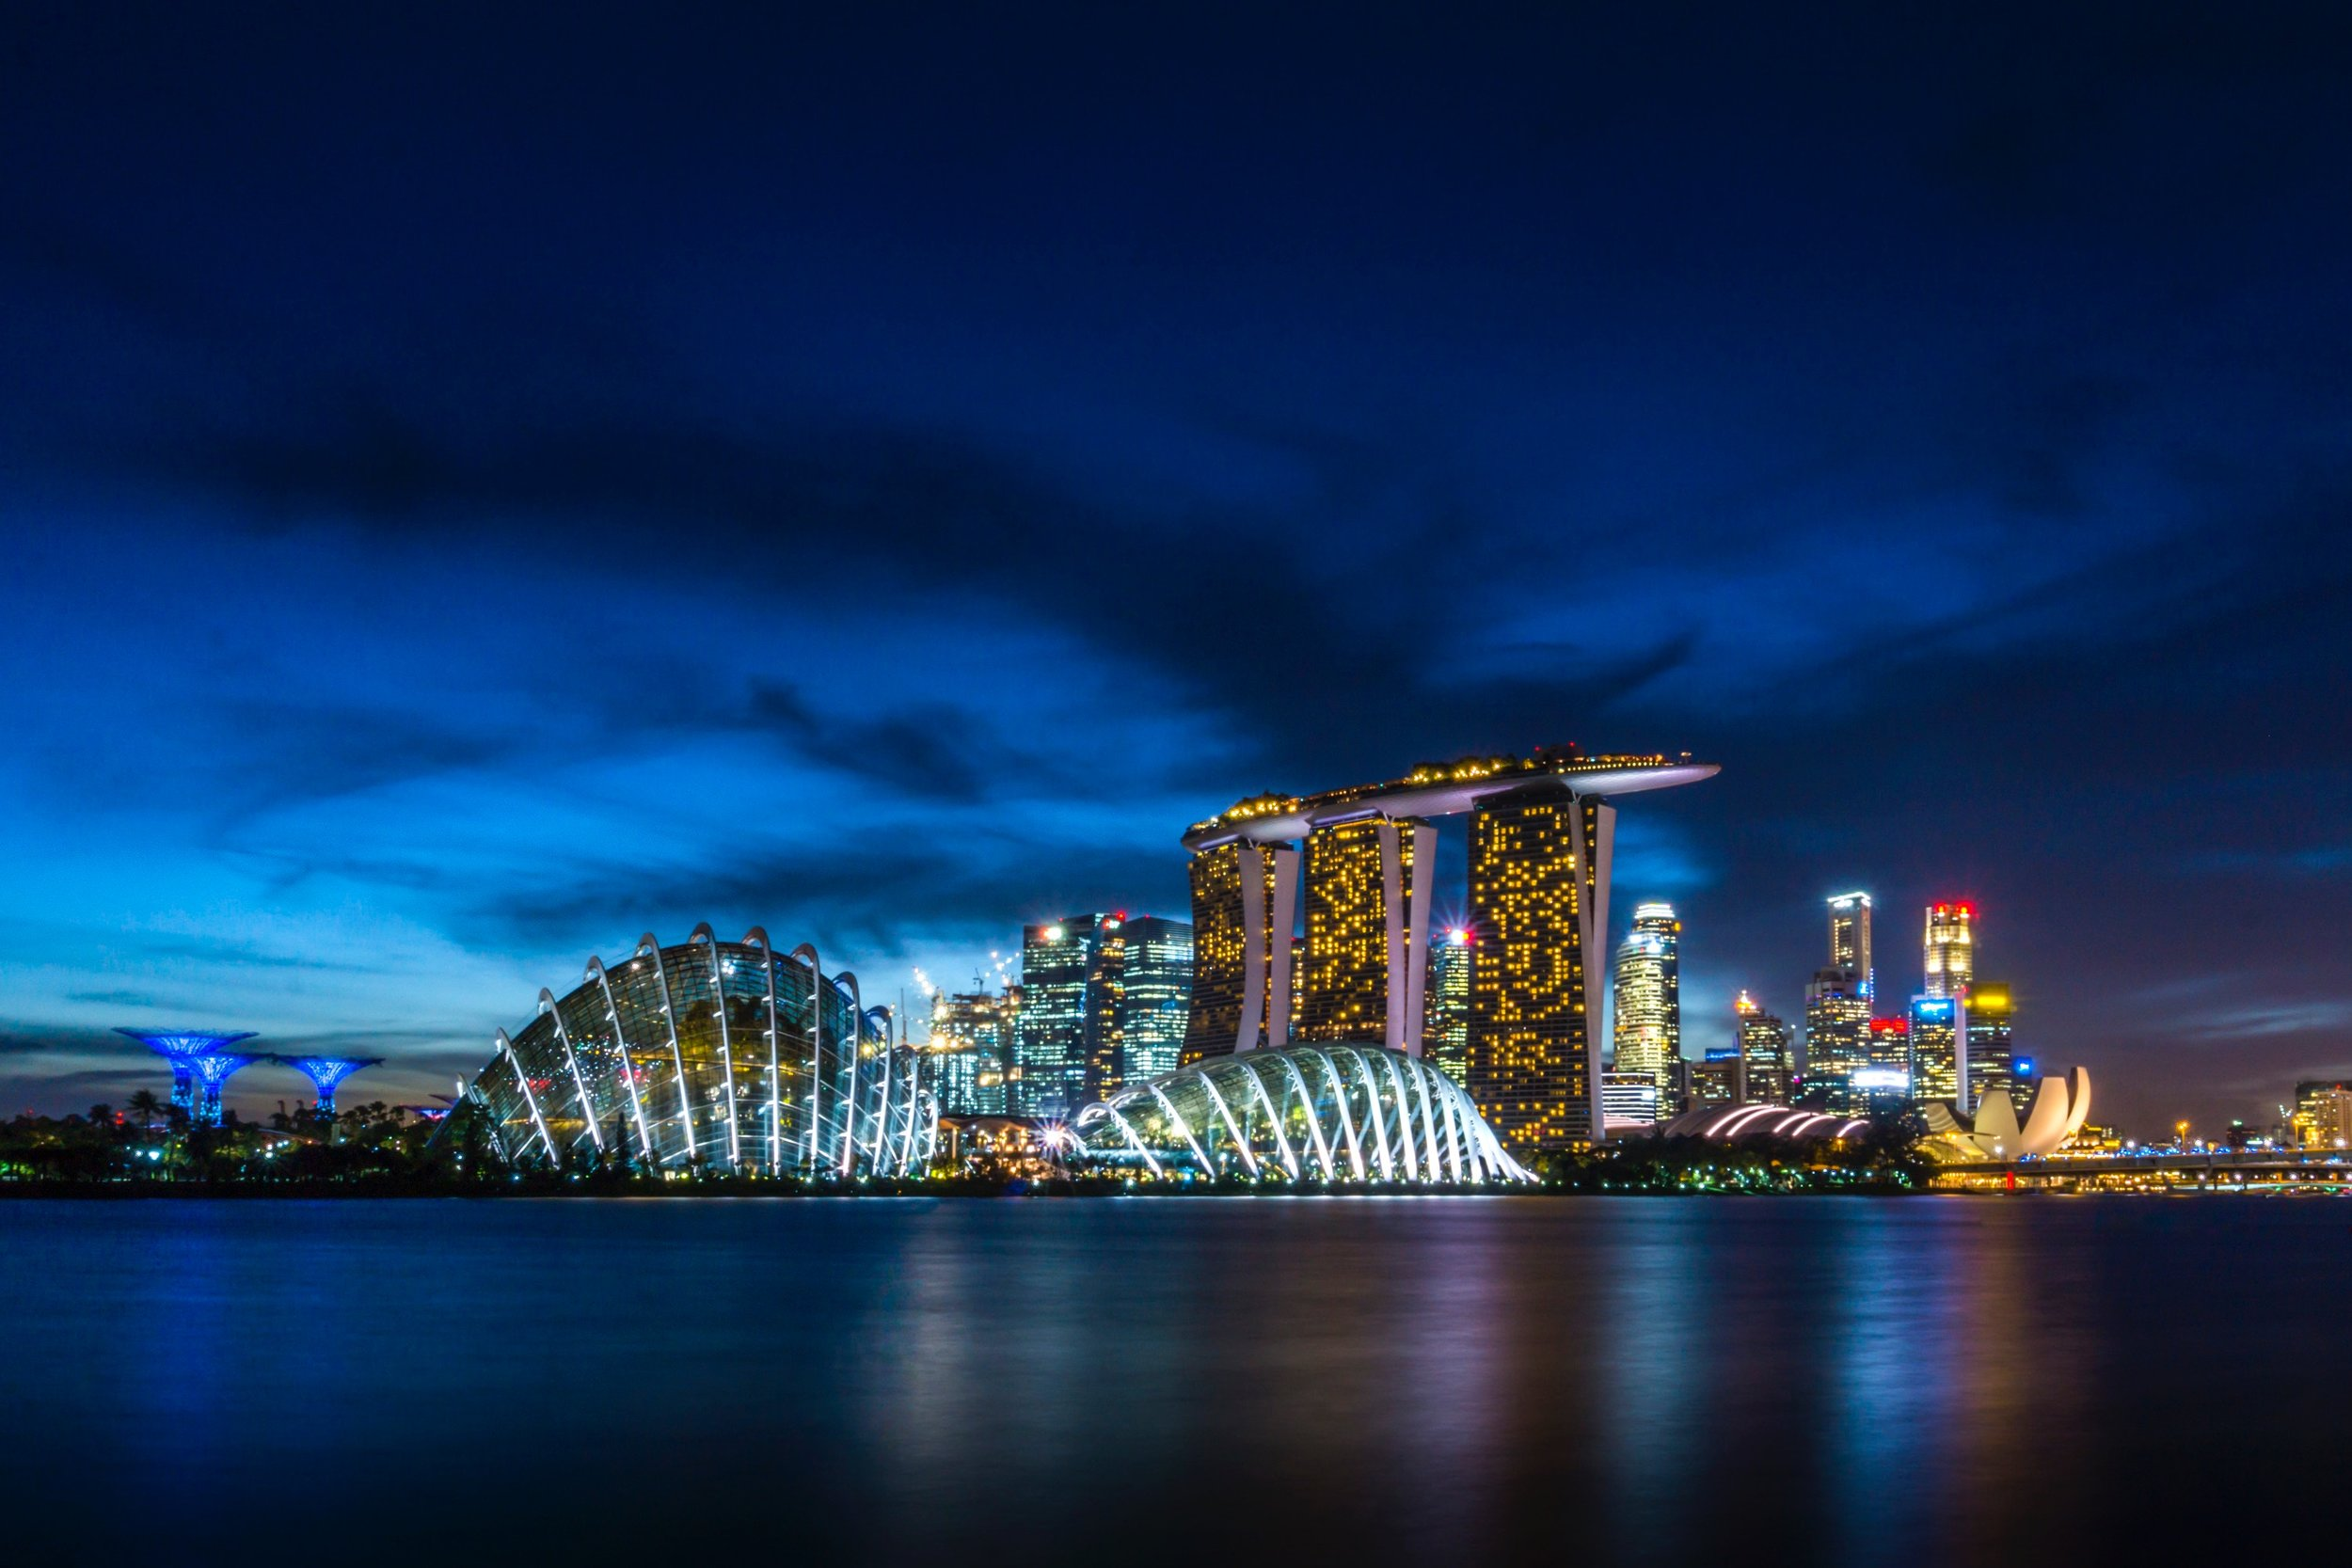 Singapore's Marina Bay Sands Hotel and Casino and the Gardens on the Bay.